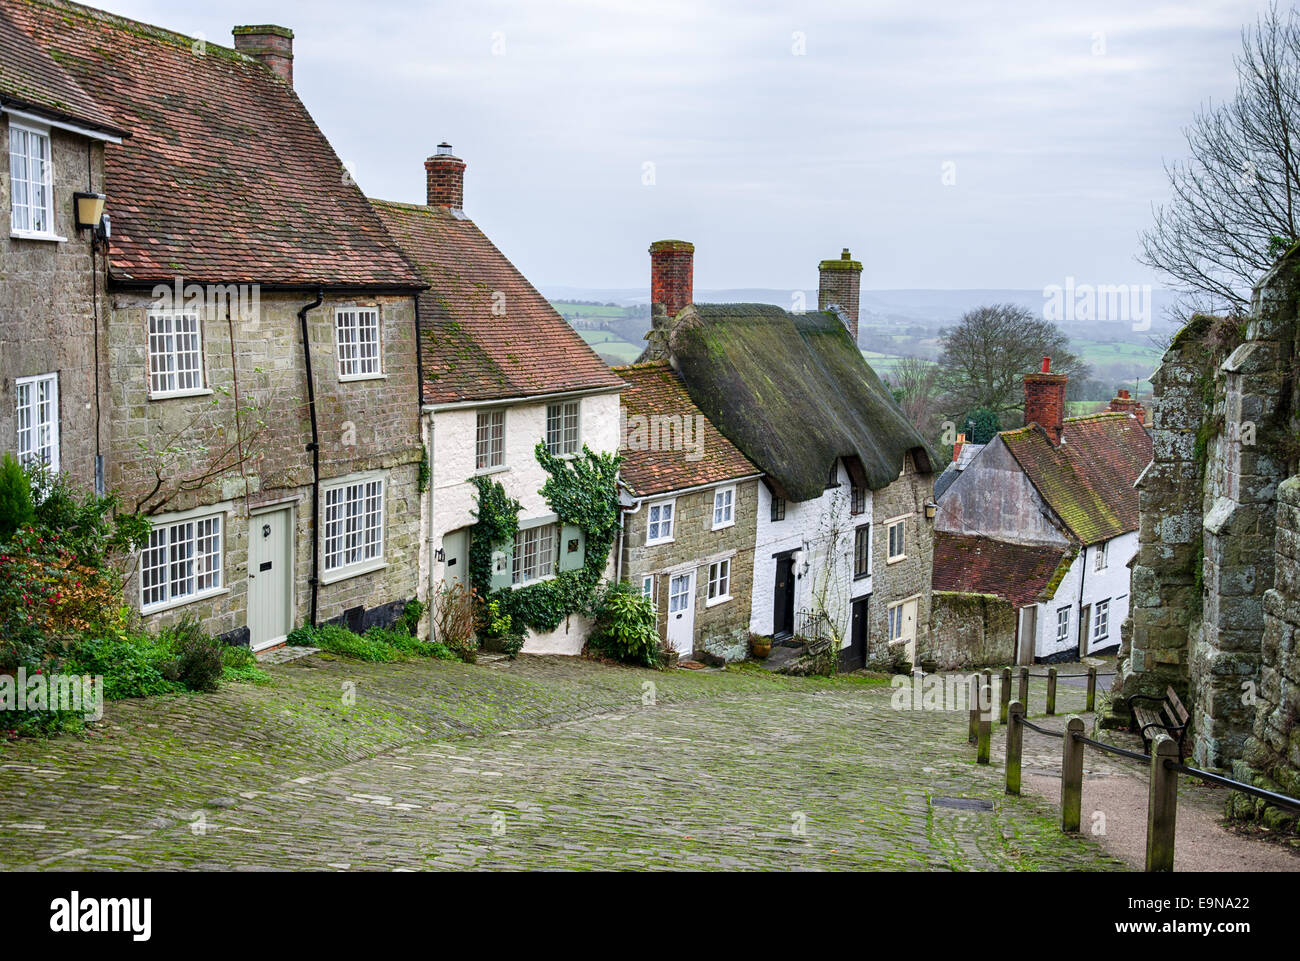 Cottages on a cobblestone street at Gold Hill in Shaftesbury in Dorset Stock Photo